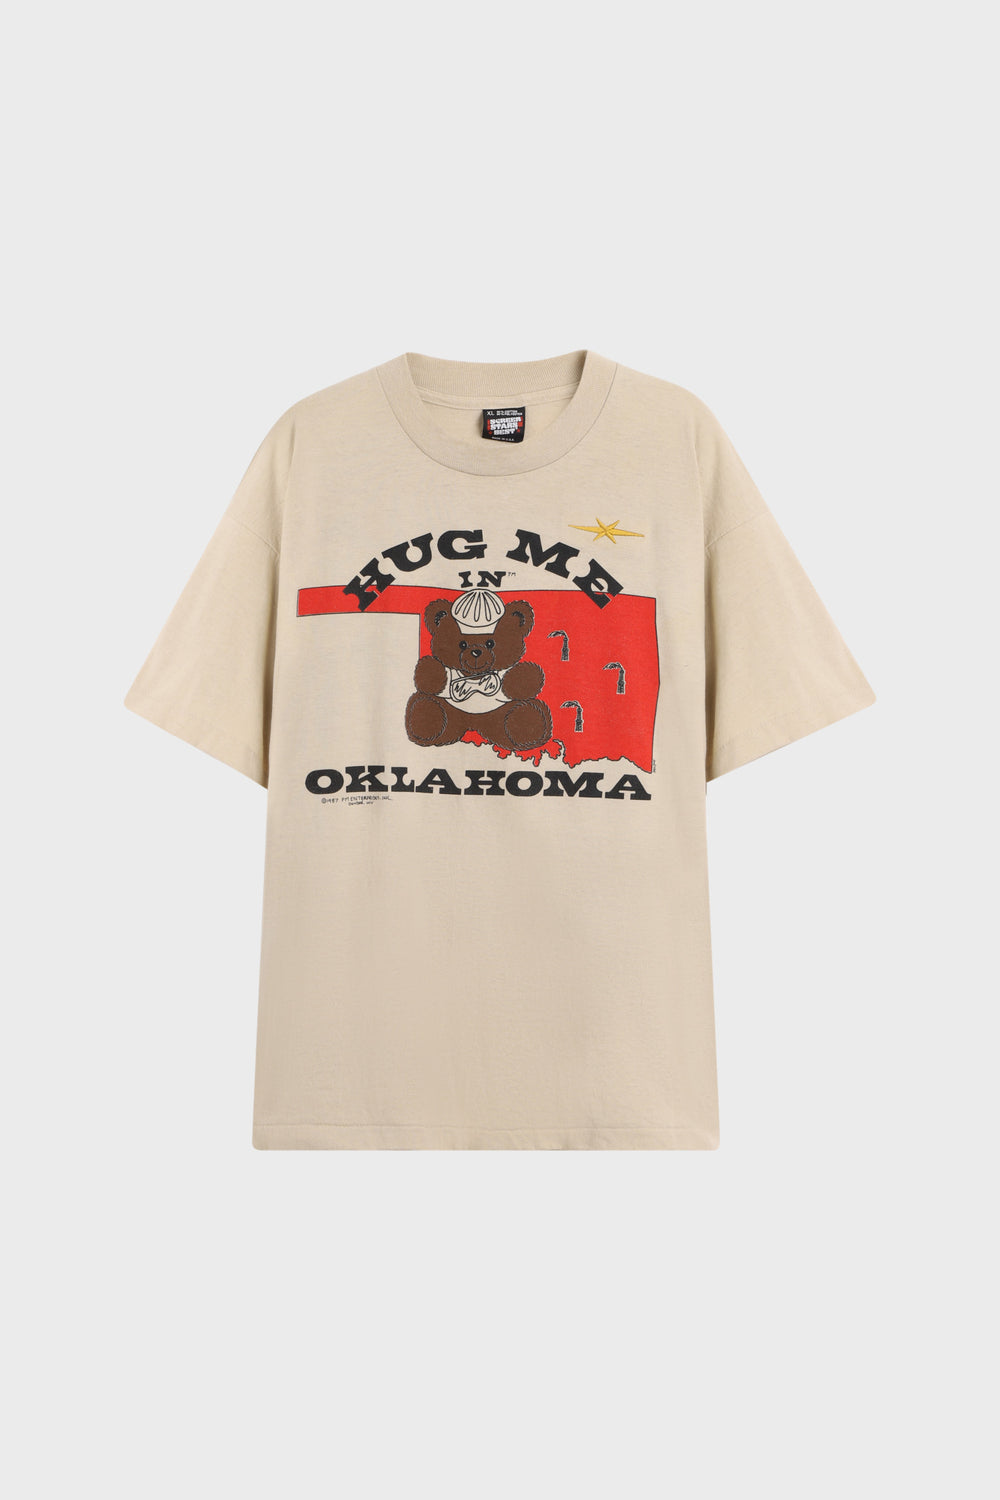 product-color-Hug Me in Oklahoma T-shirt